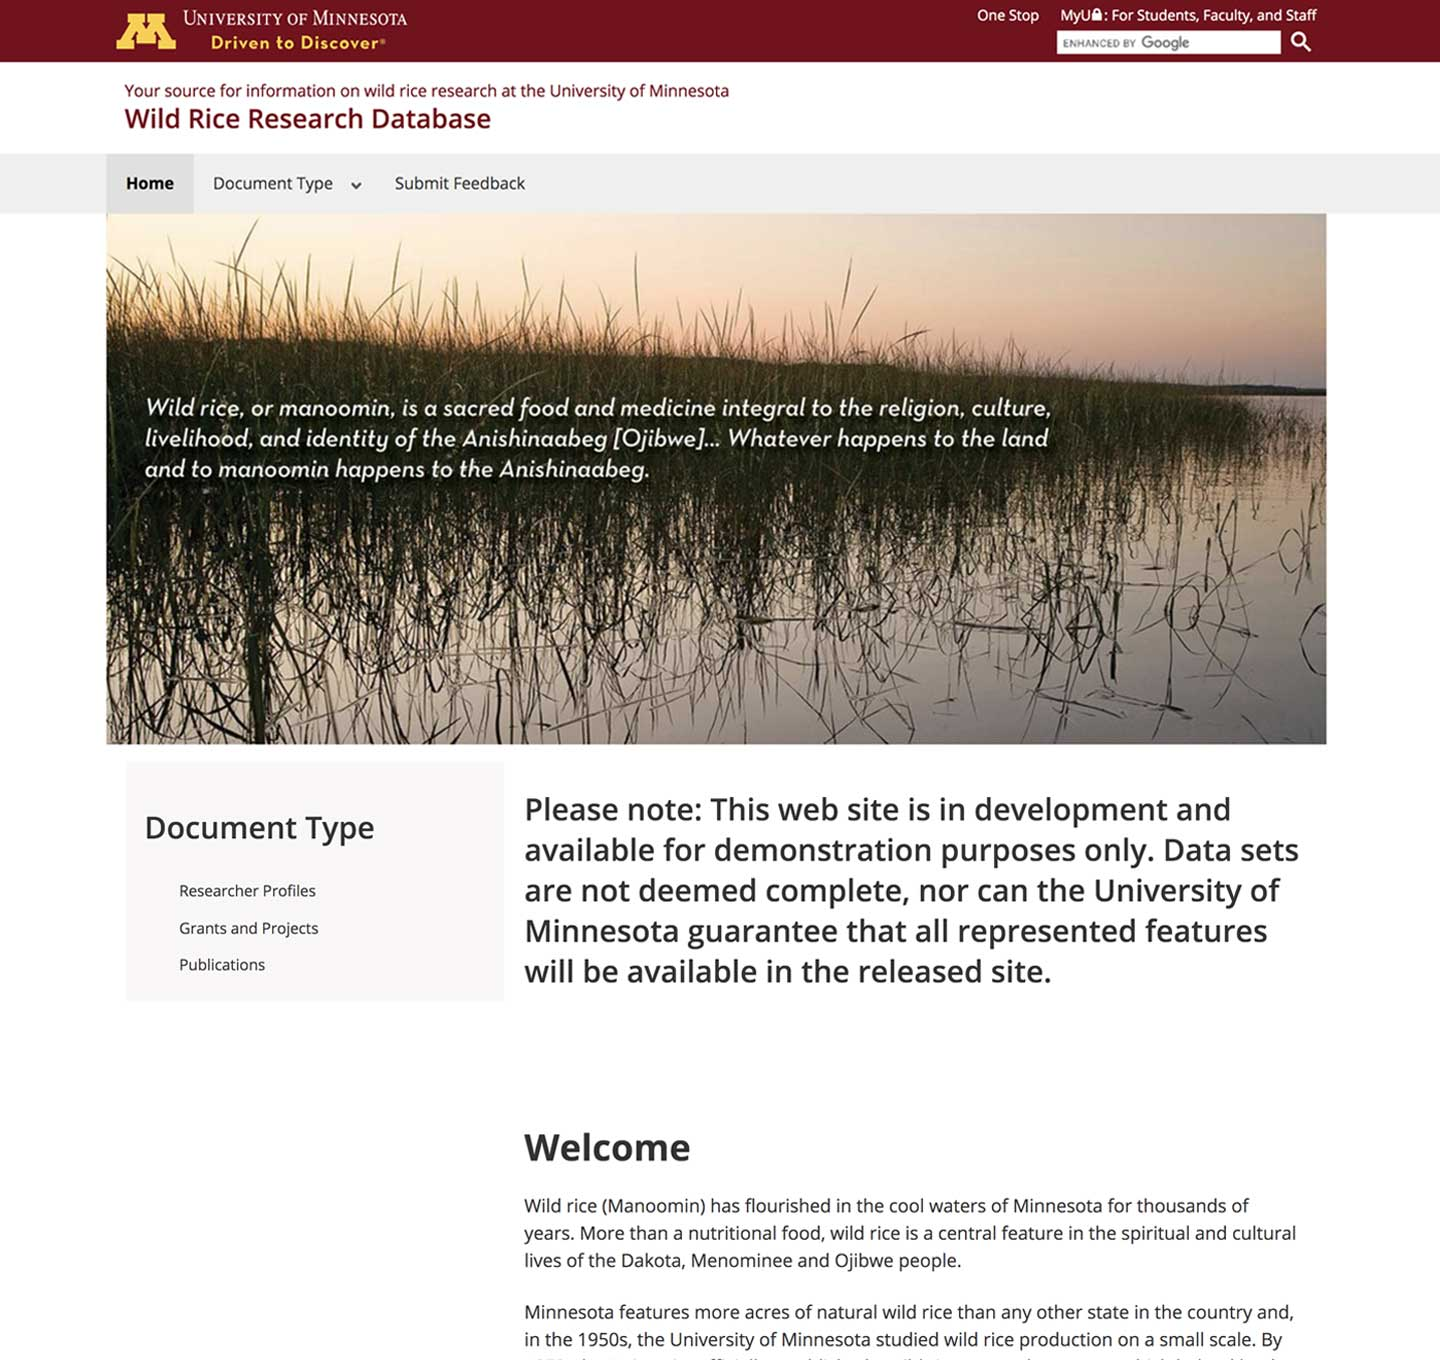 Wild rice research website screenshot